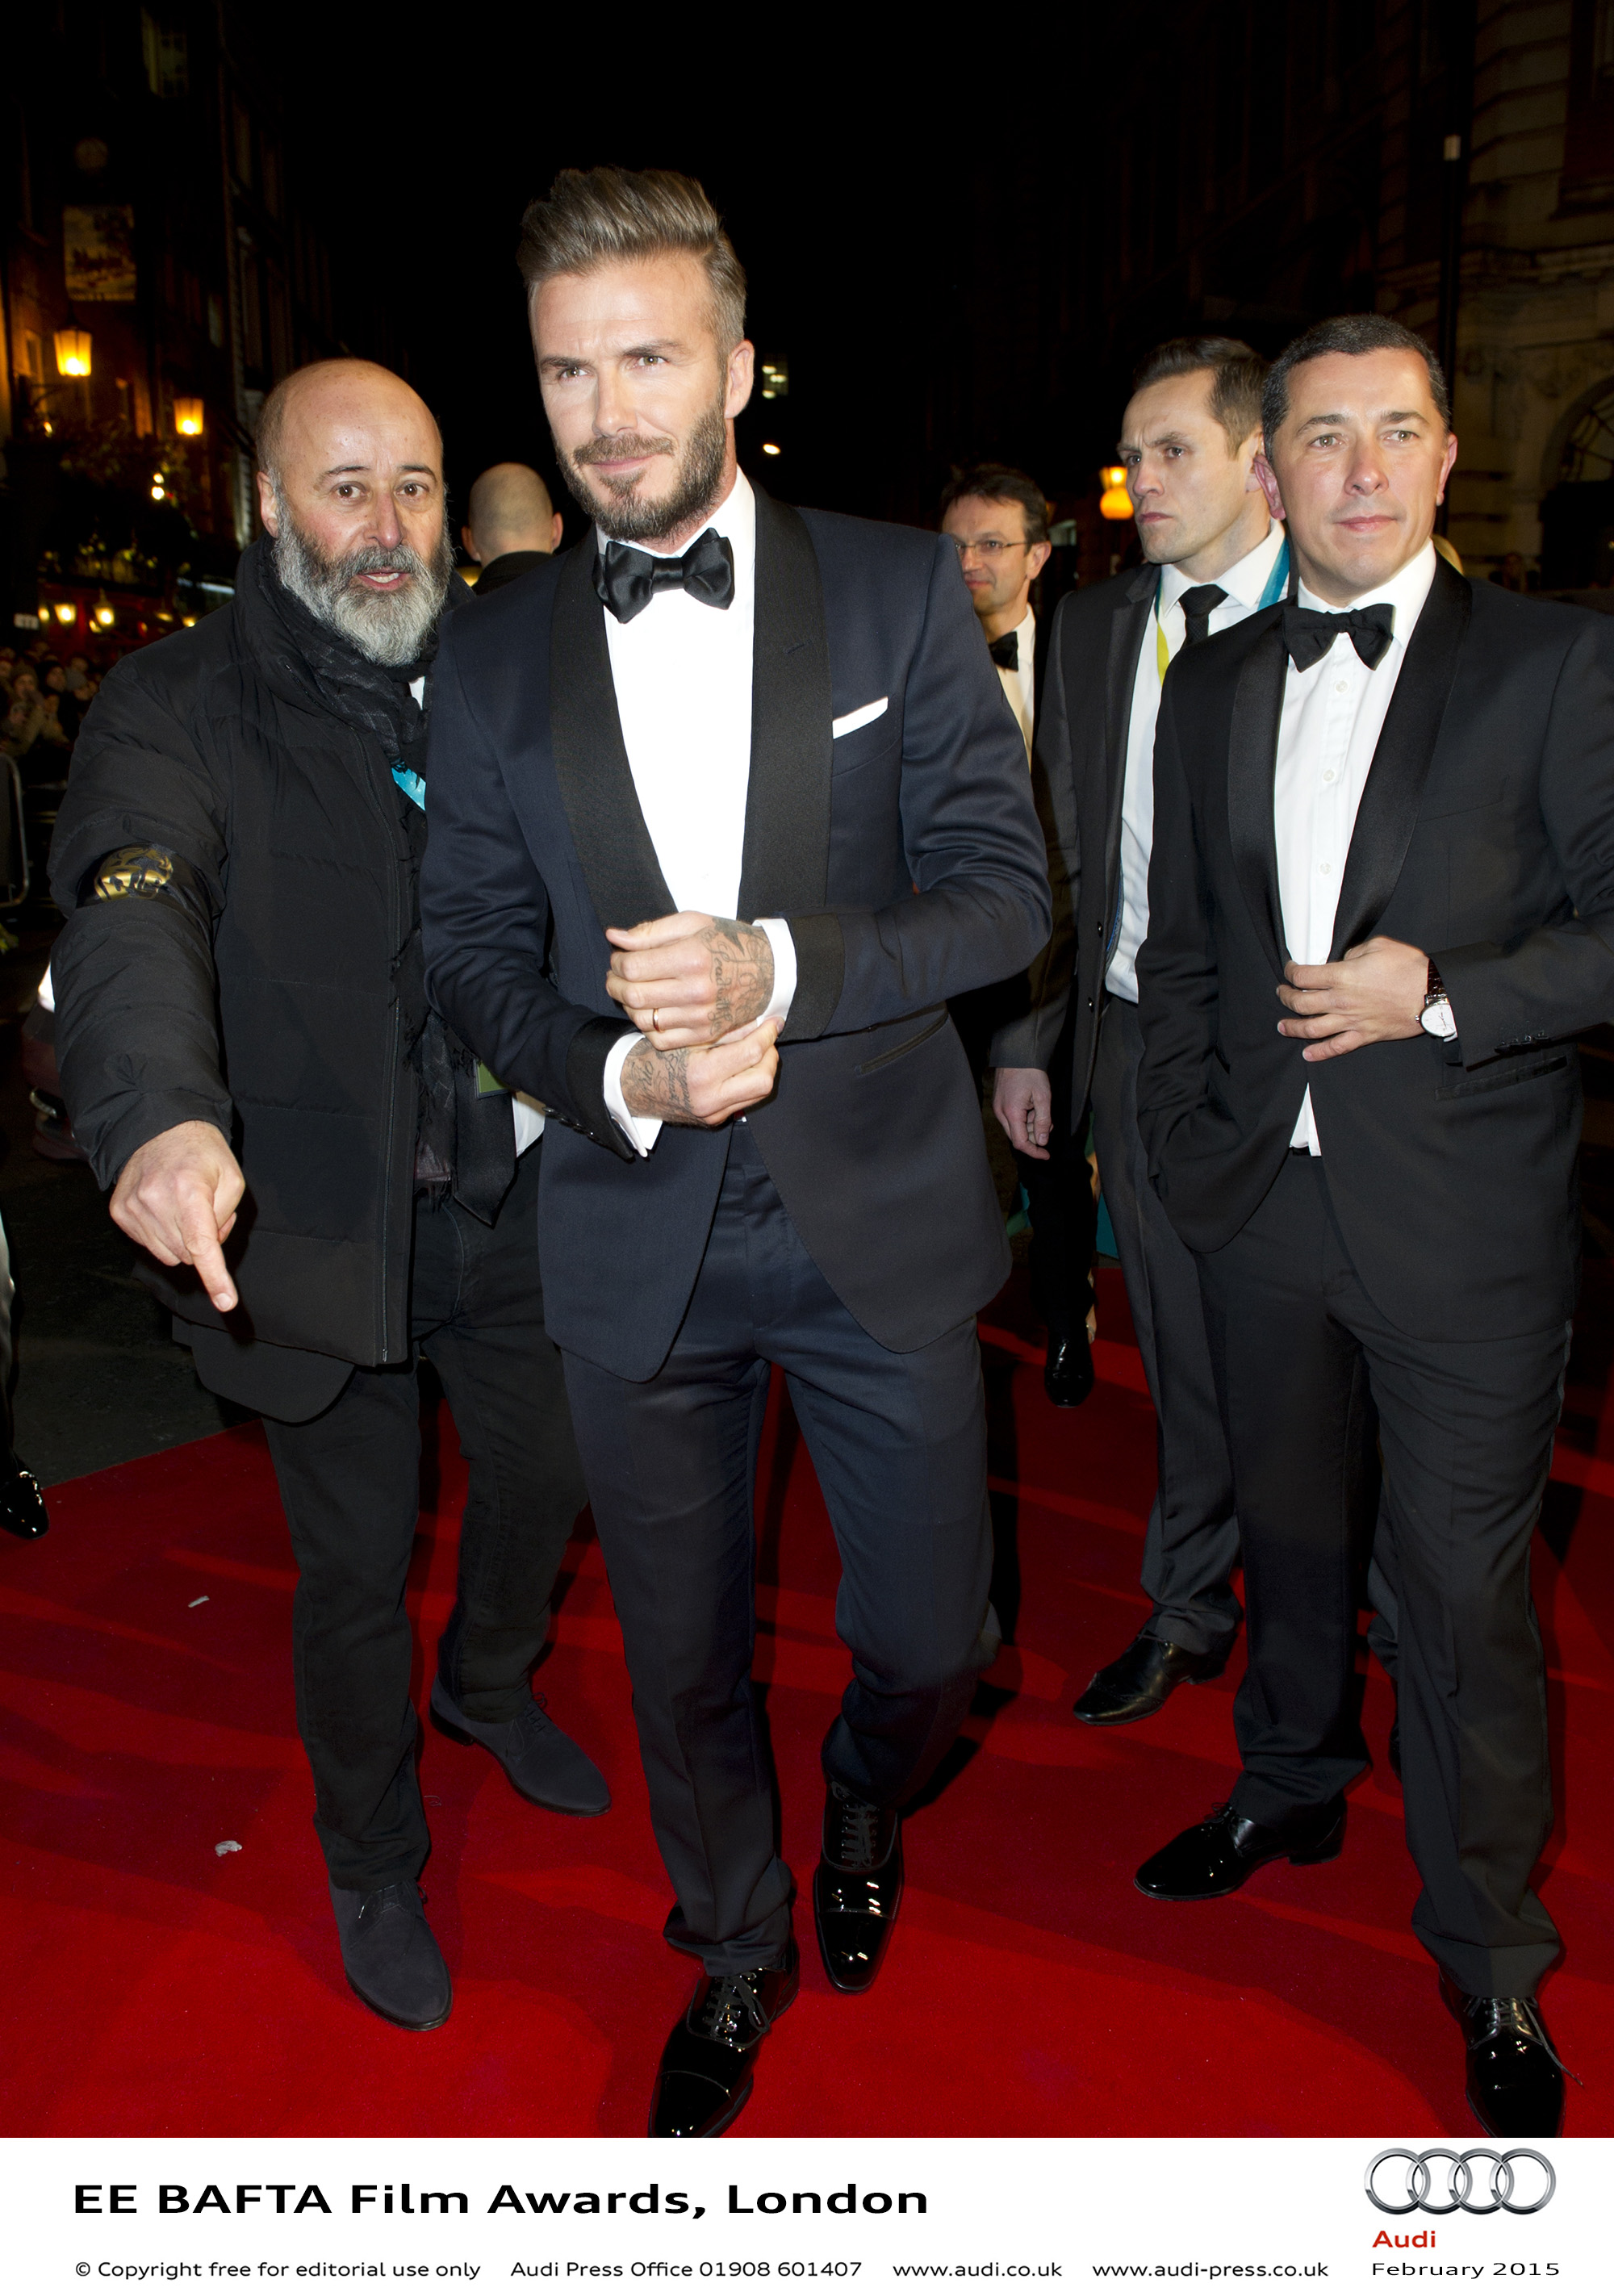 David Beckham - EE BAFTA Film Awards